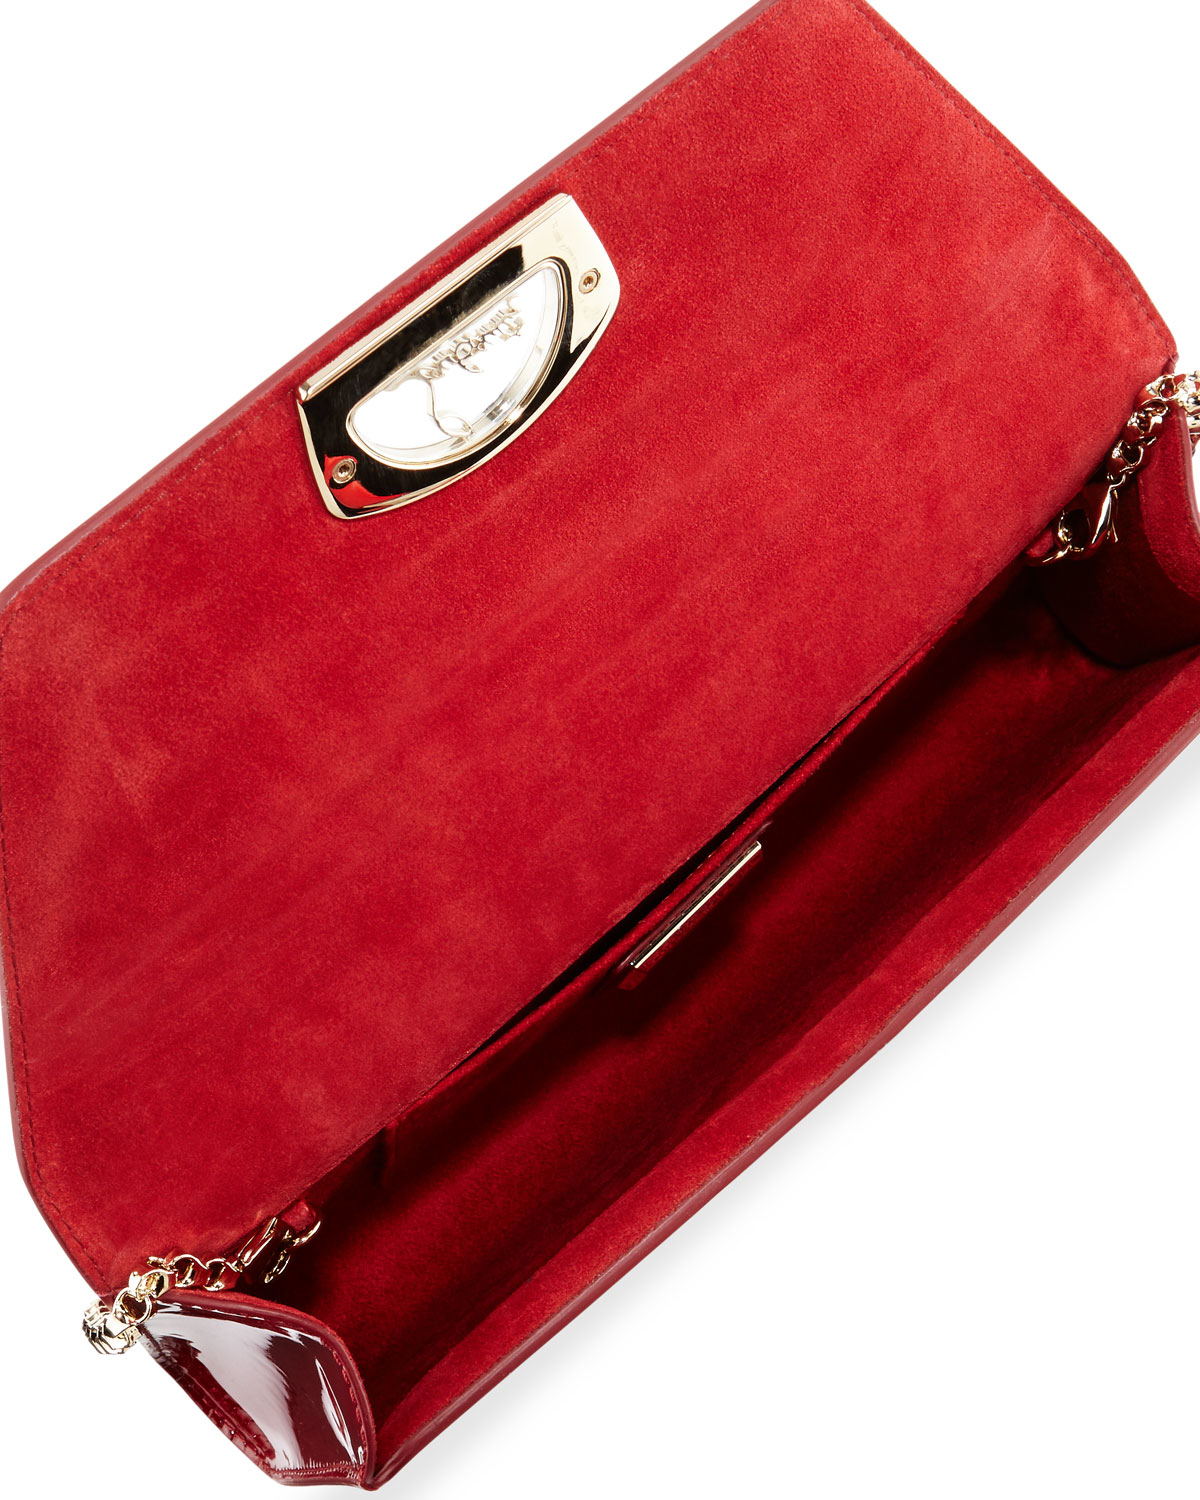 Christian louboutin Vero Flap Patent Clutch Bag in Red